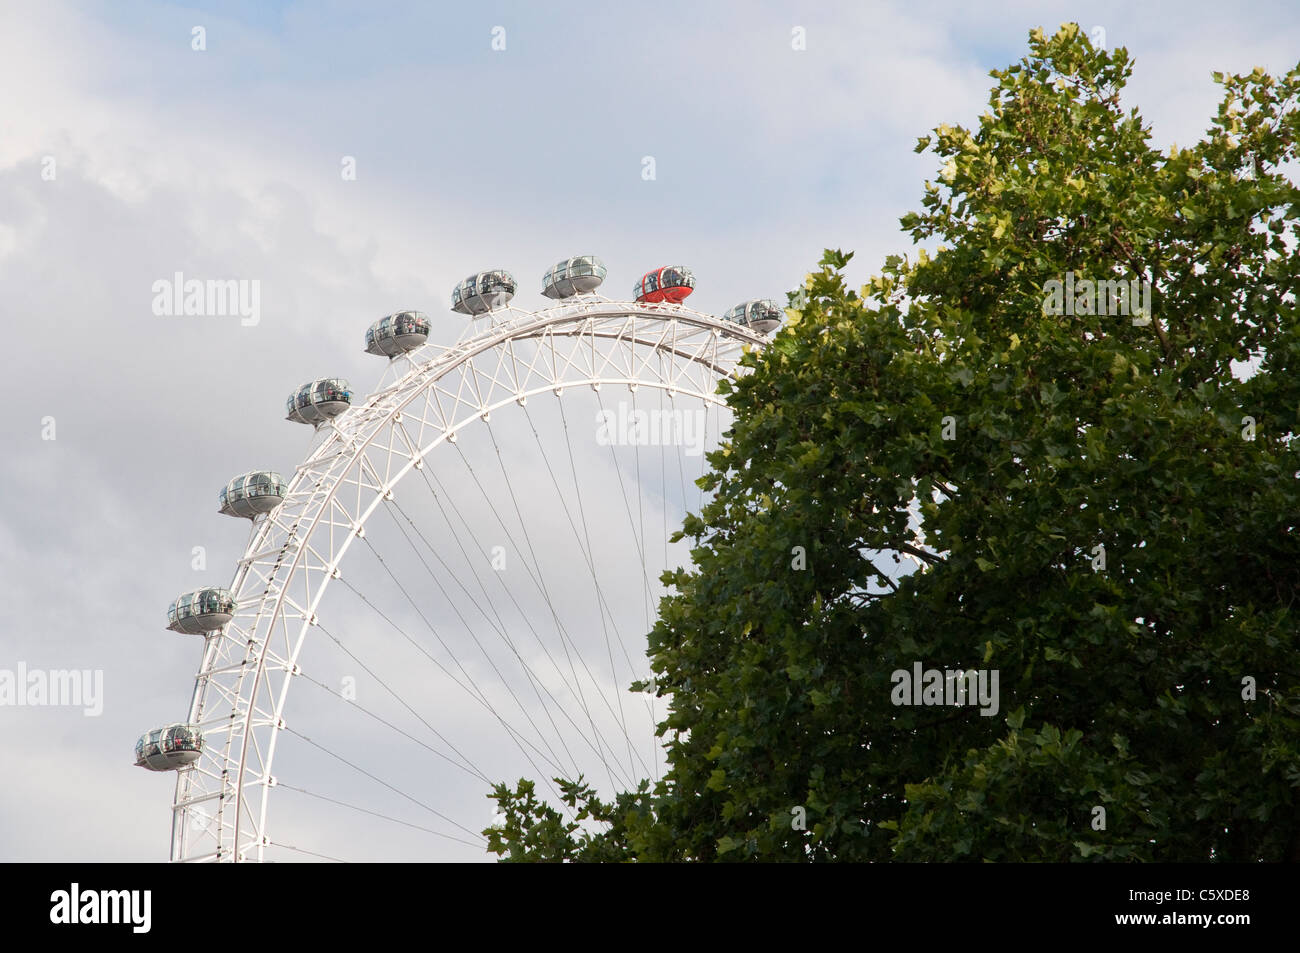 The large ferris wheel known as the 'London Eye' seen behind trees on the South Bank, London, England. - Stock Image